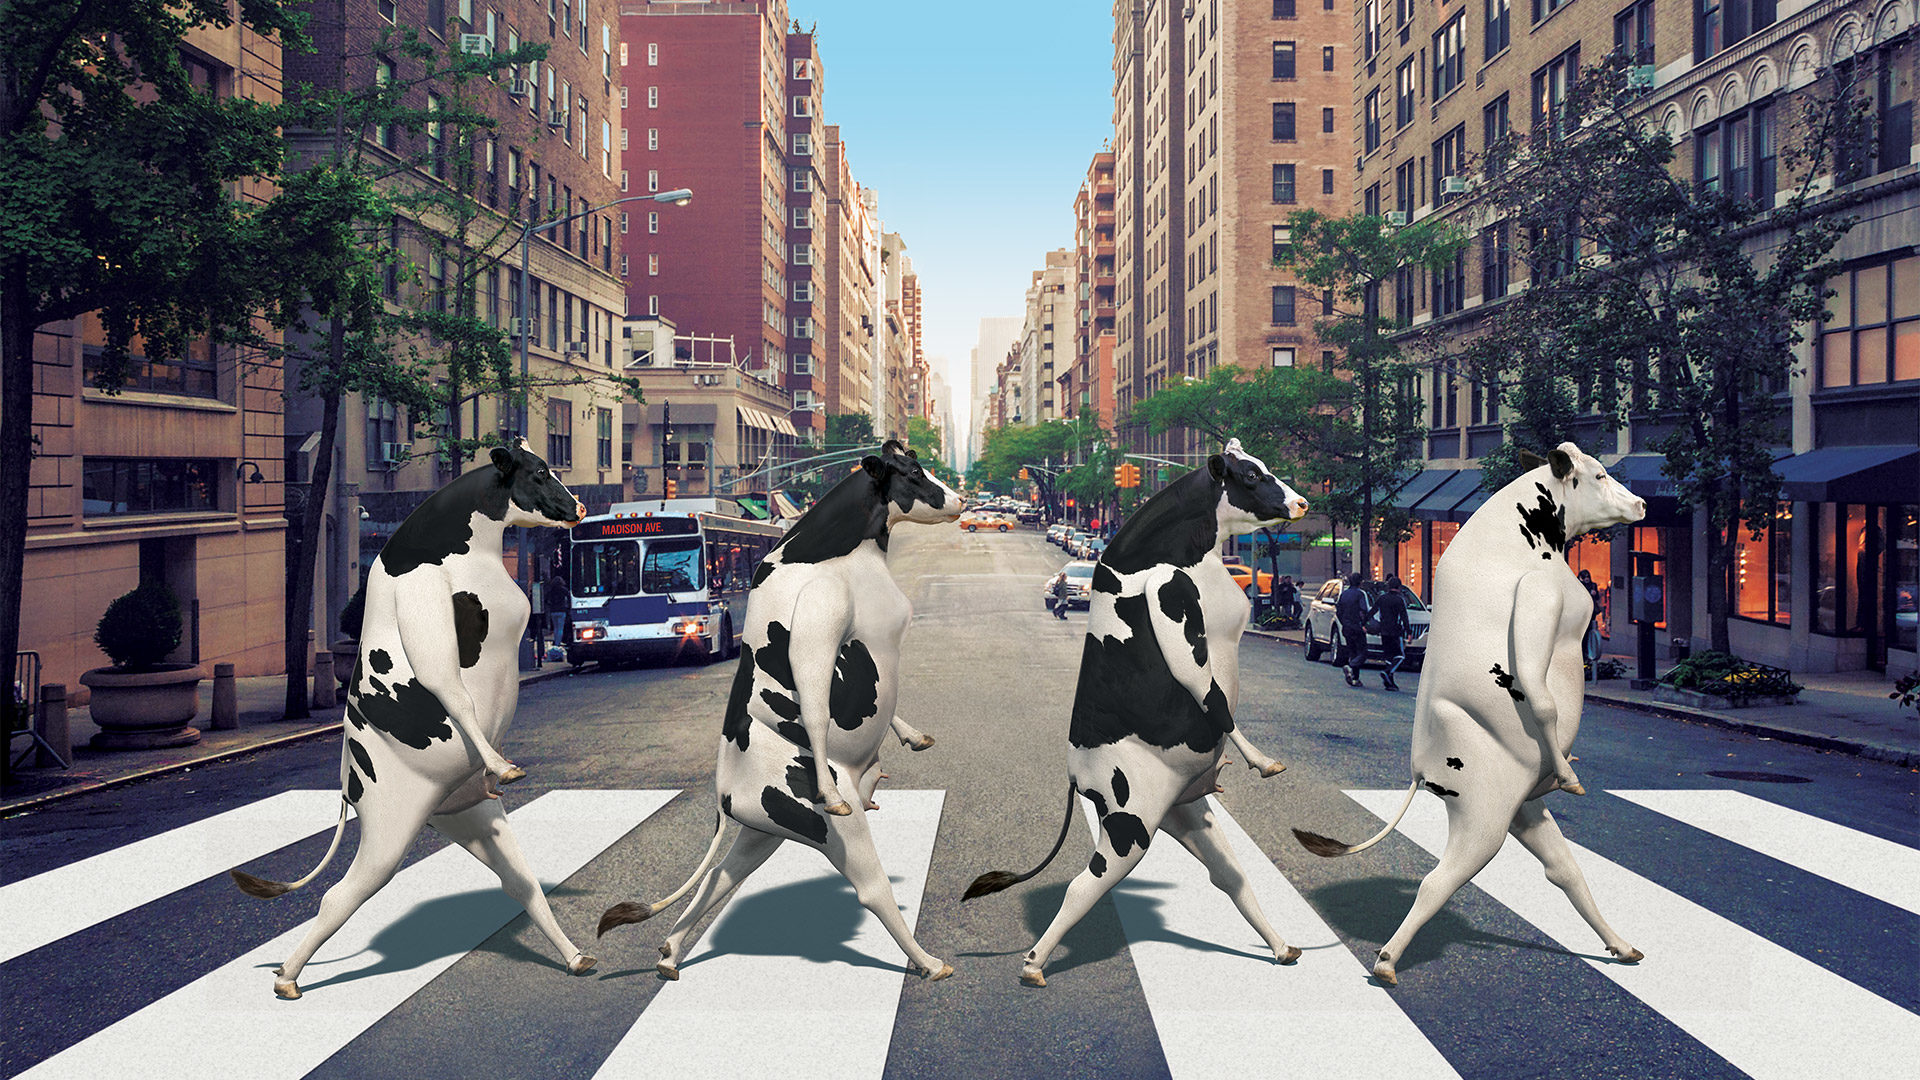 Abbey_Road_Cows-1920x1080.jpg